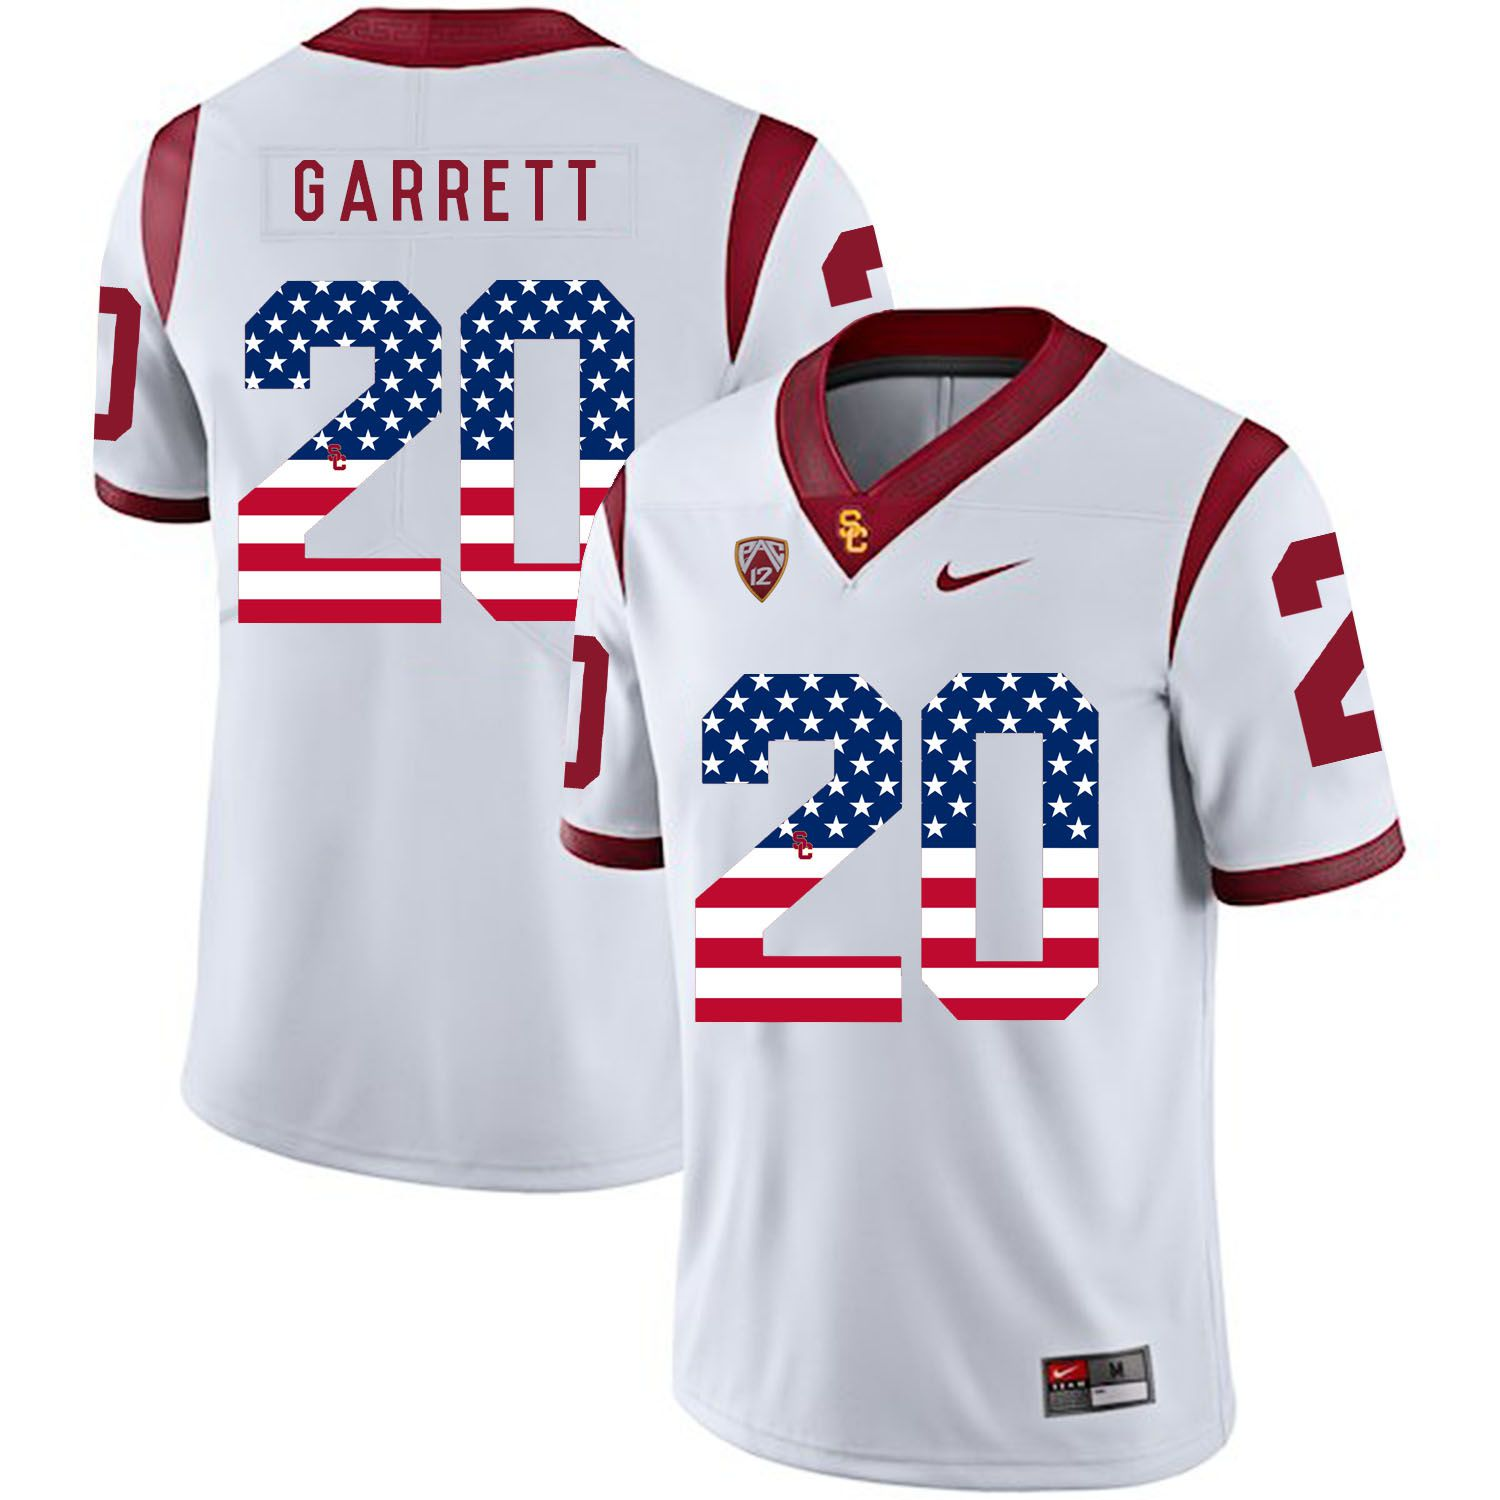 Men USC Trojans 20 Garrett White Flag Customized NCAA Jerseys